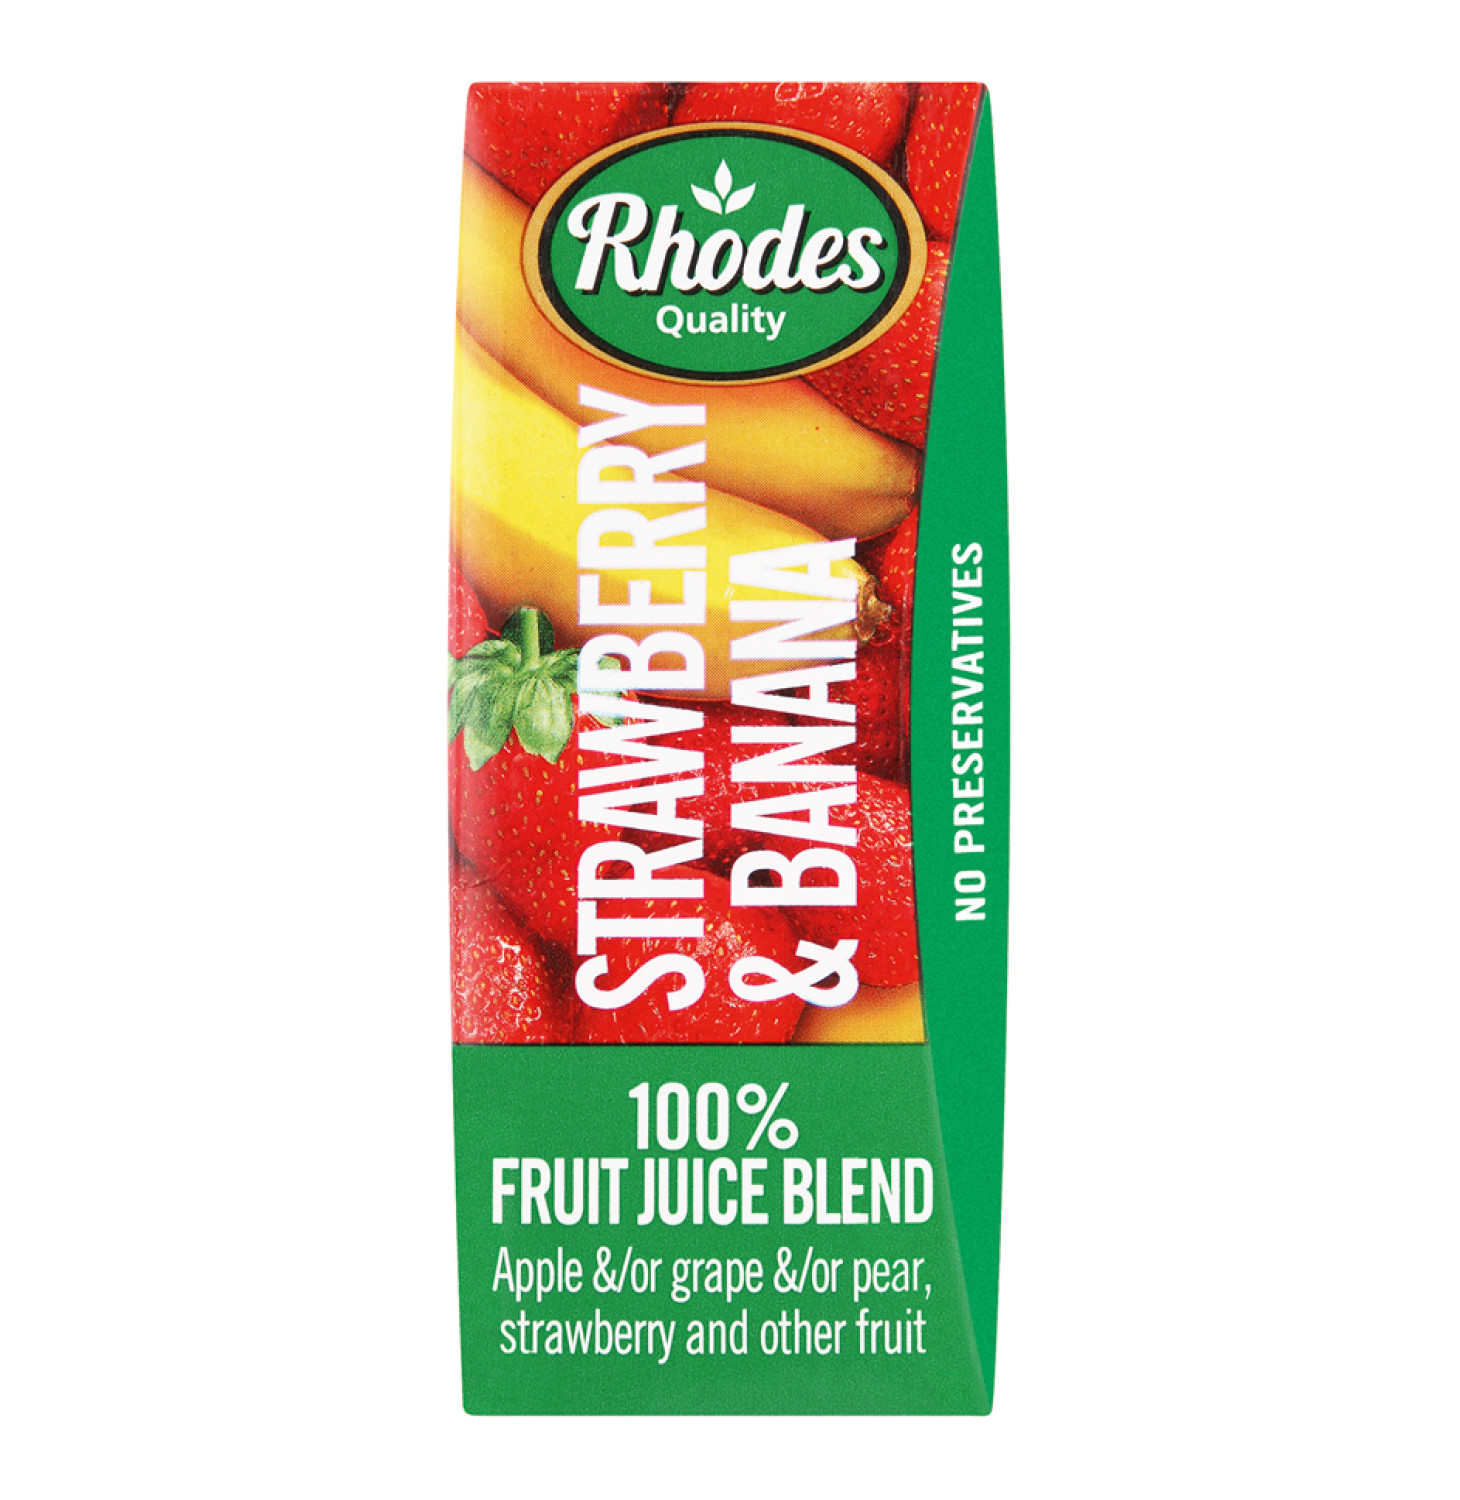 Rhodes Fruit Juice Blend Strawberry And Banana (6 x 200ml)